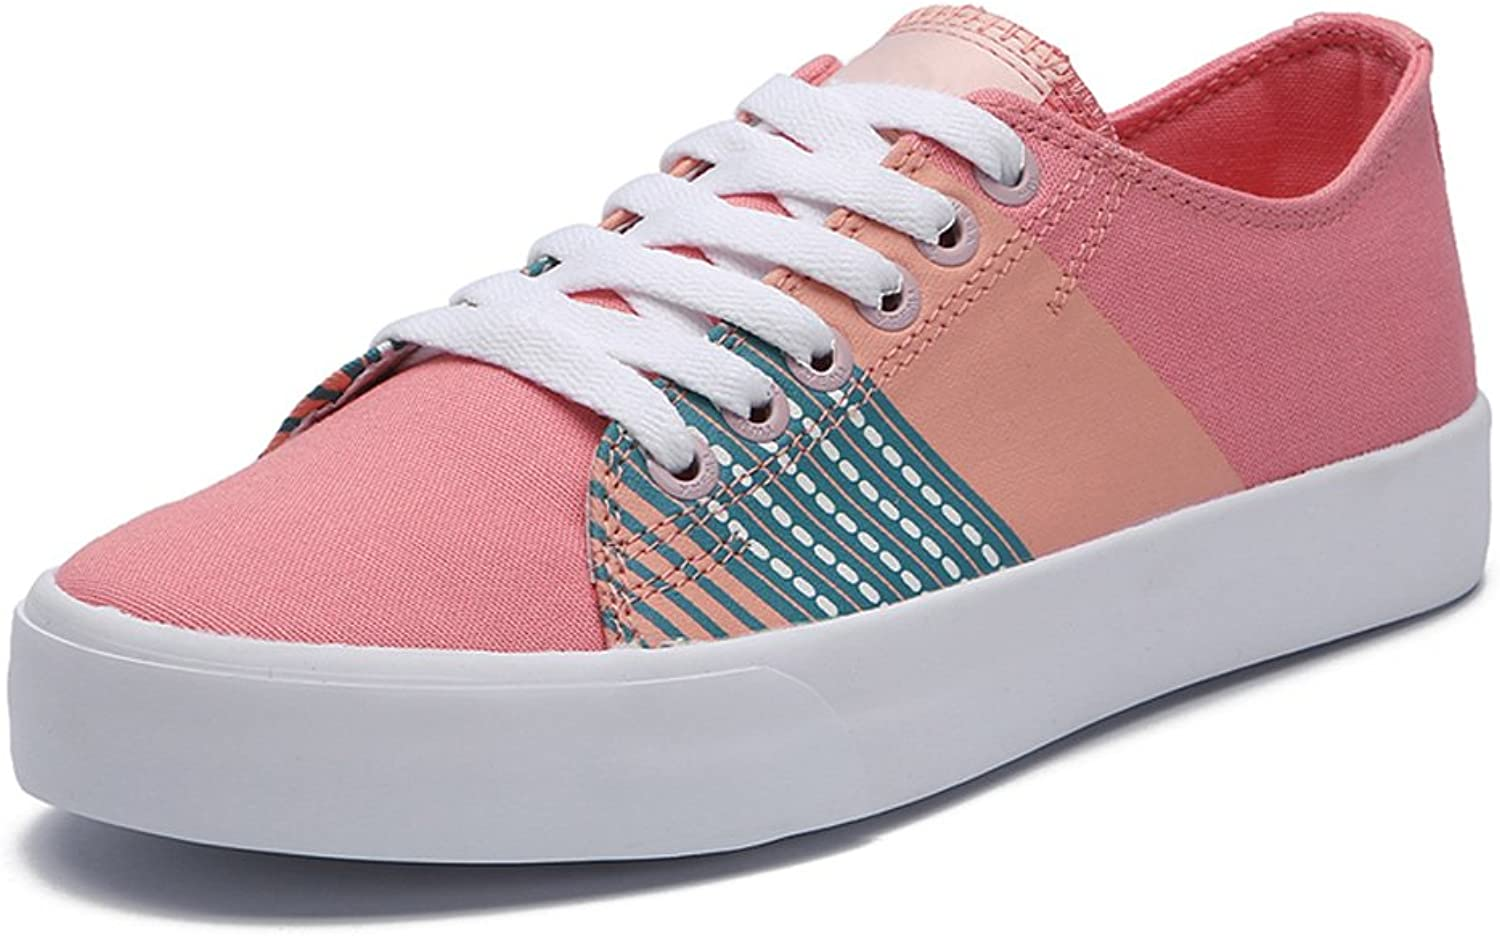 LIUXUEPING Summer Girl Casual shoes Low Help Sneakers Fresh Canvas shoes Comfortable Flat shoes (color   Pink, Size   35)